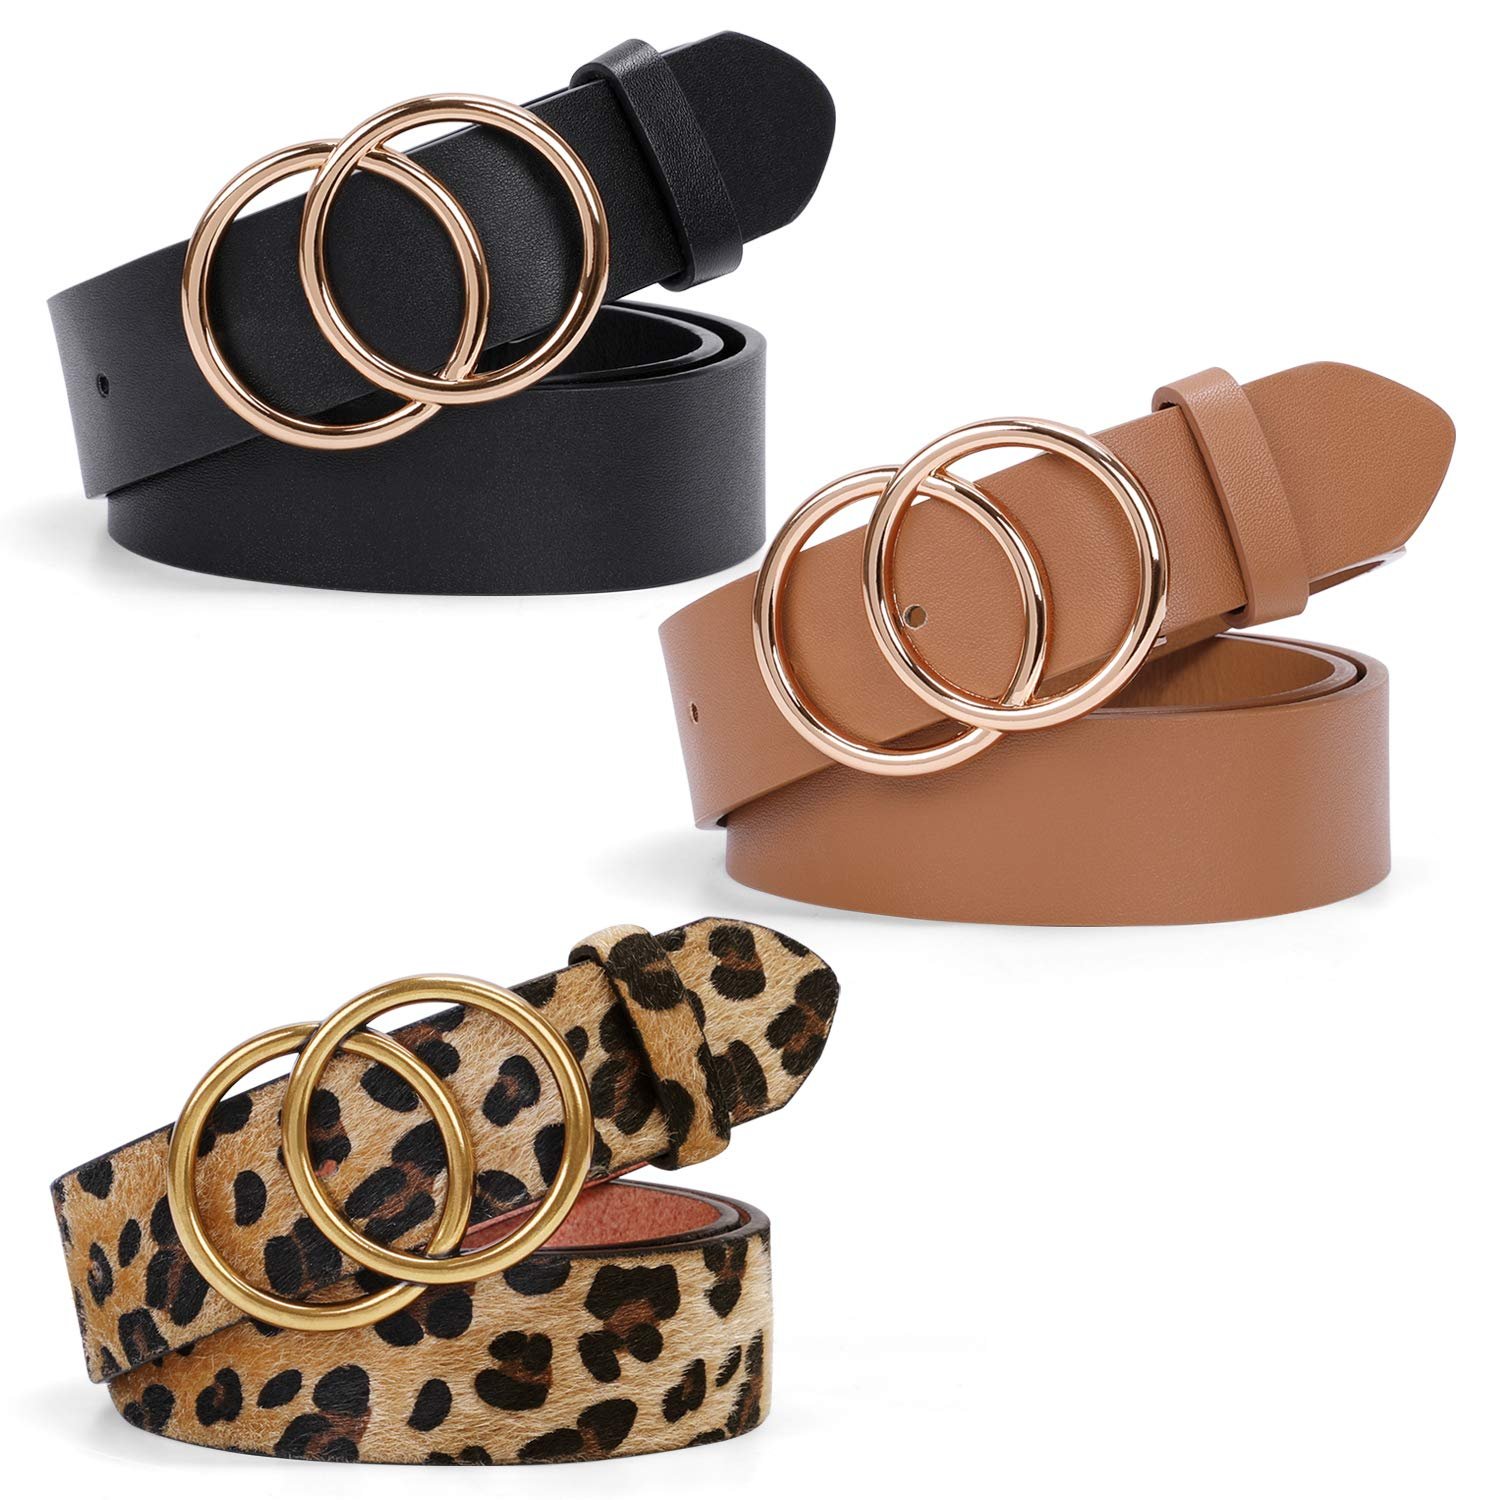 Fashion Gold Double O-Ring Belts for Women Faux Leather Belts for Jeans Dresses Pants 3 Pack